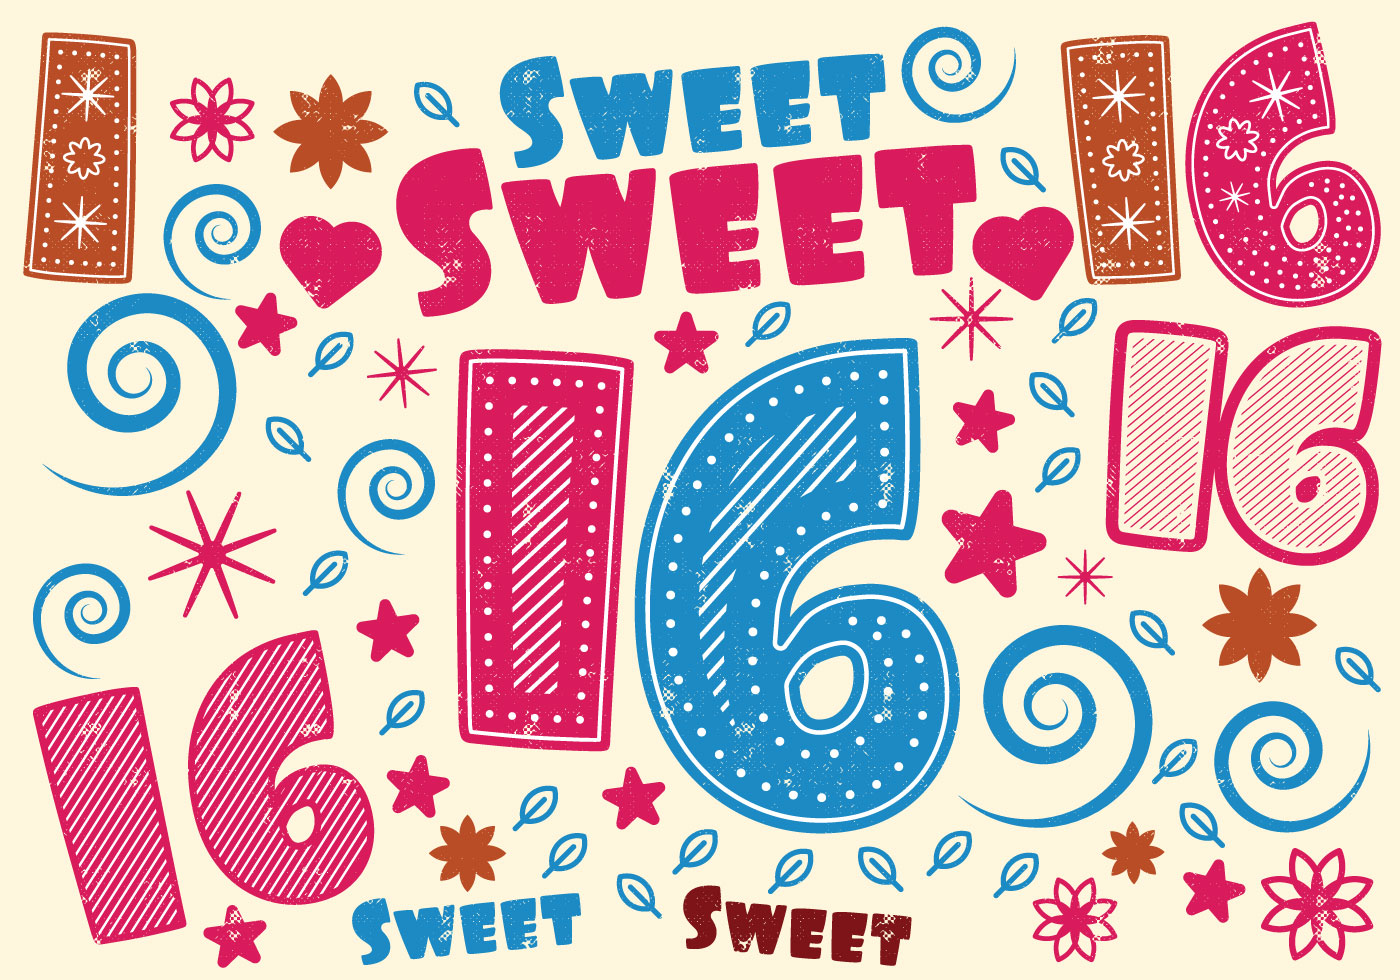 Sweet 16 Greeting Card Download Free Vector Art Stock Graphics